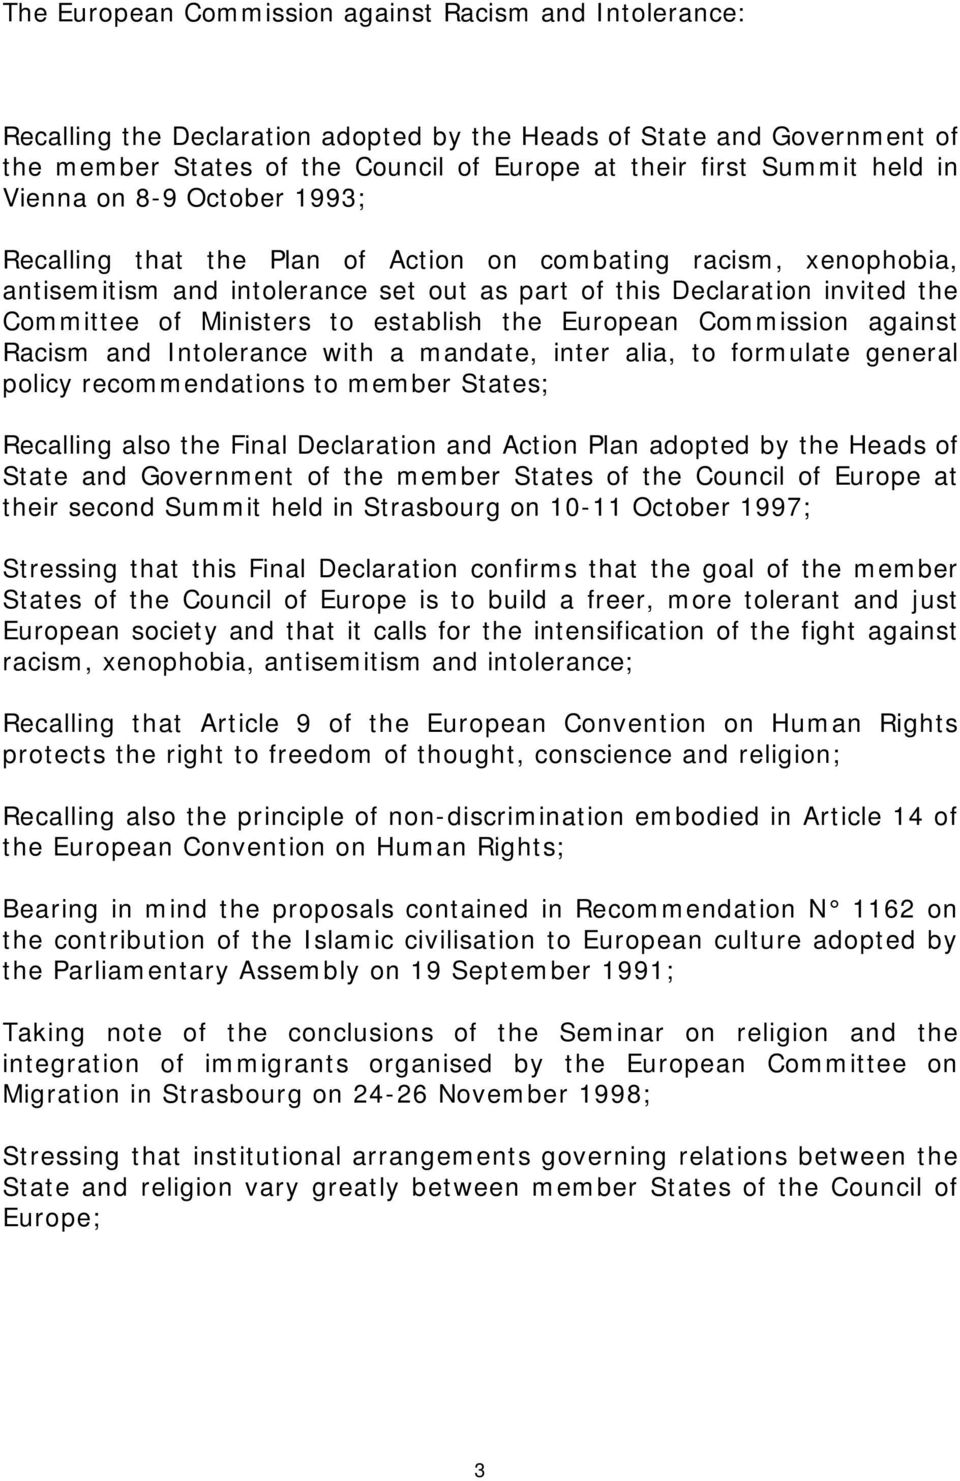 to establish the European Commission against Racism and Intolerance with a mandate, inter alia, to formulate general policy recommendations to member States; Recalling also the Final Declaration and